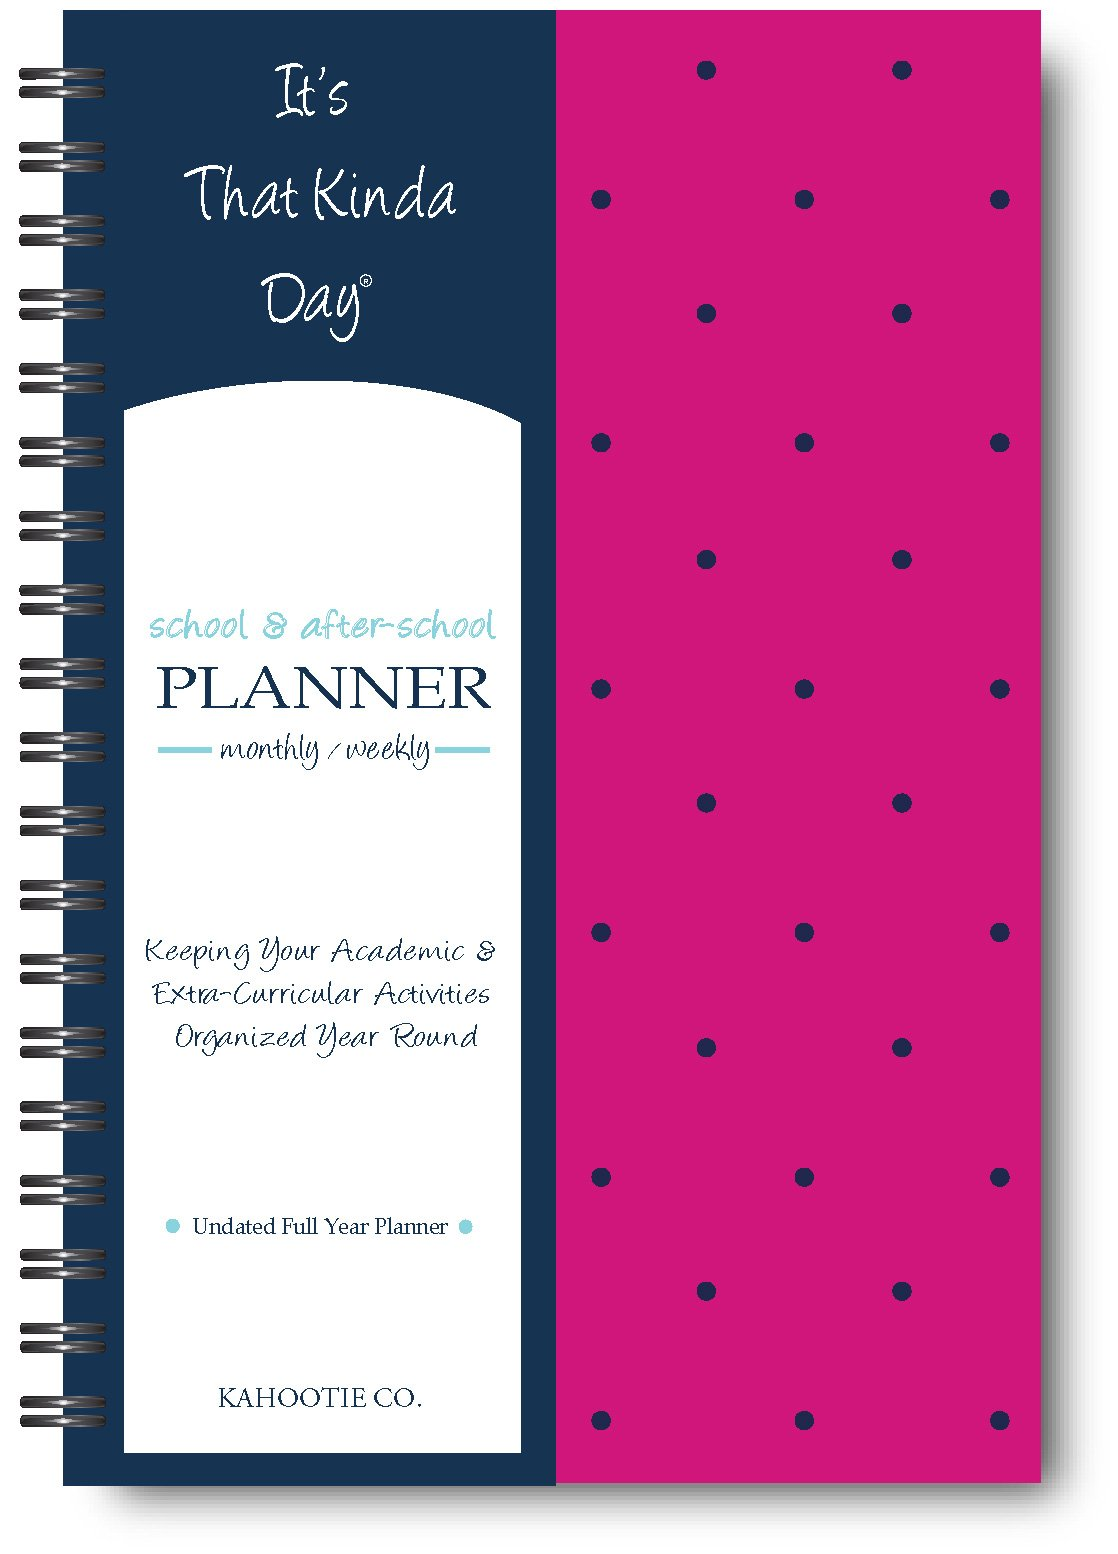 It's That Kinda Day- School & After-School Planner 6x9 (PINK POLKA DOTS)